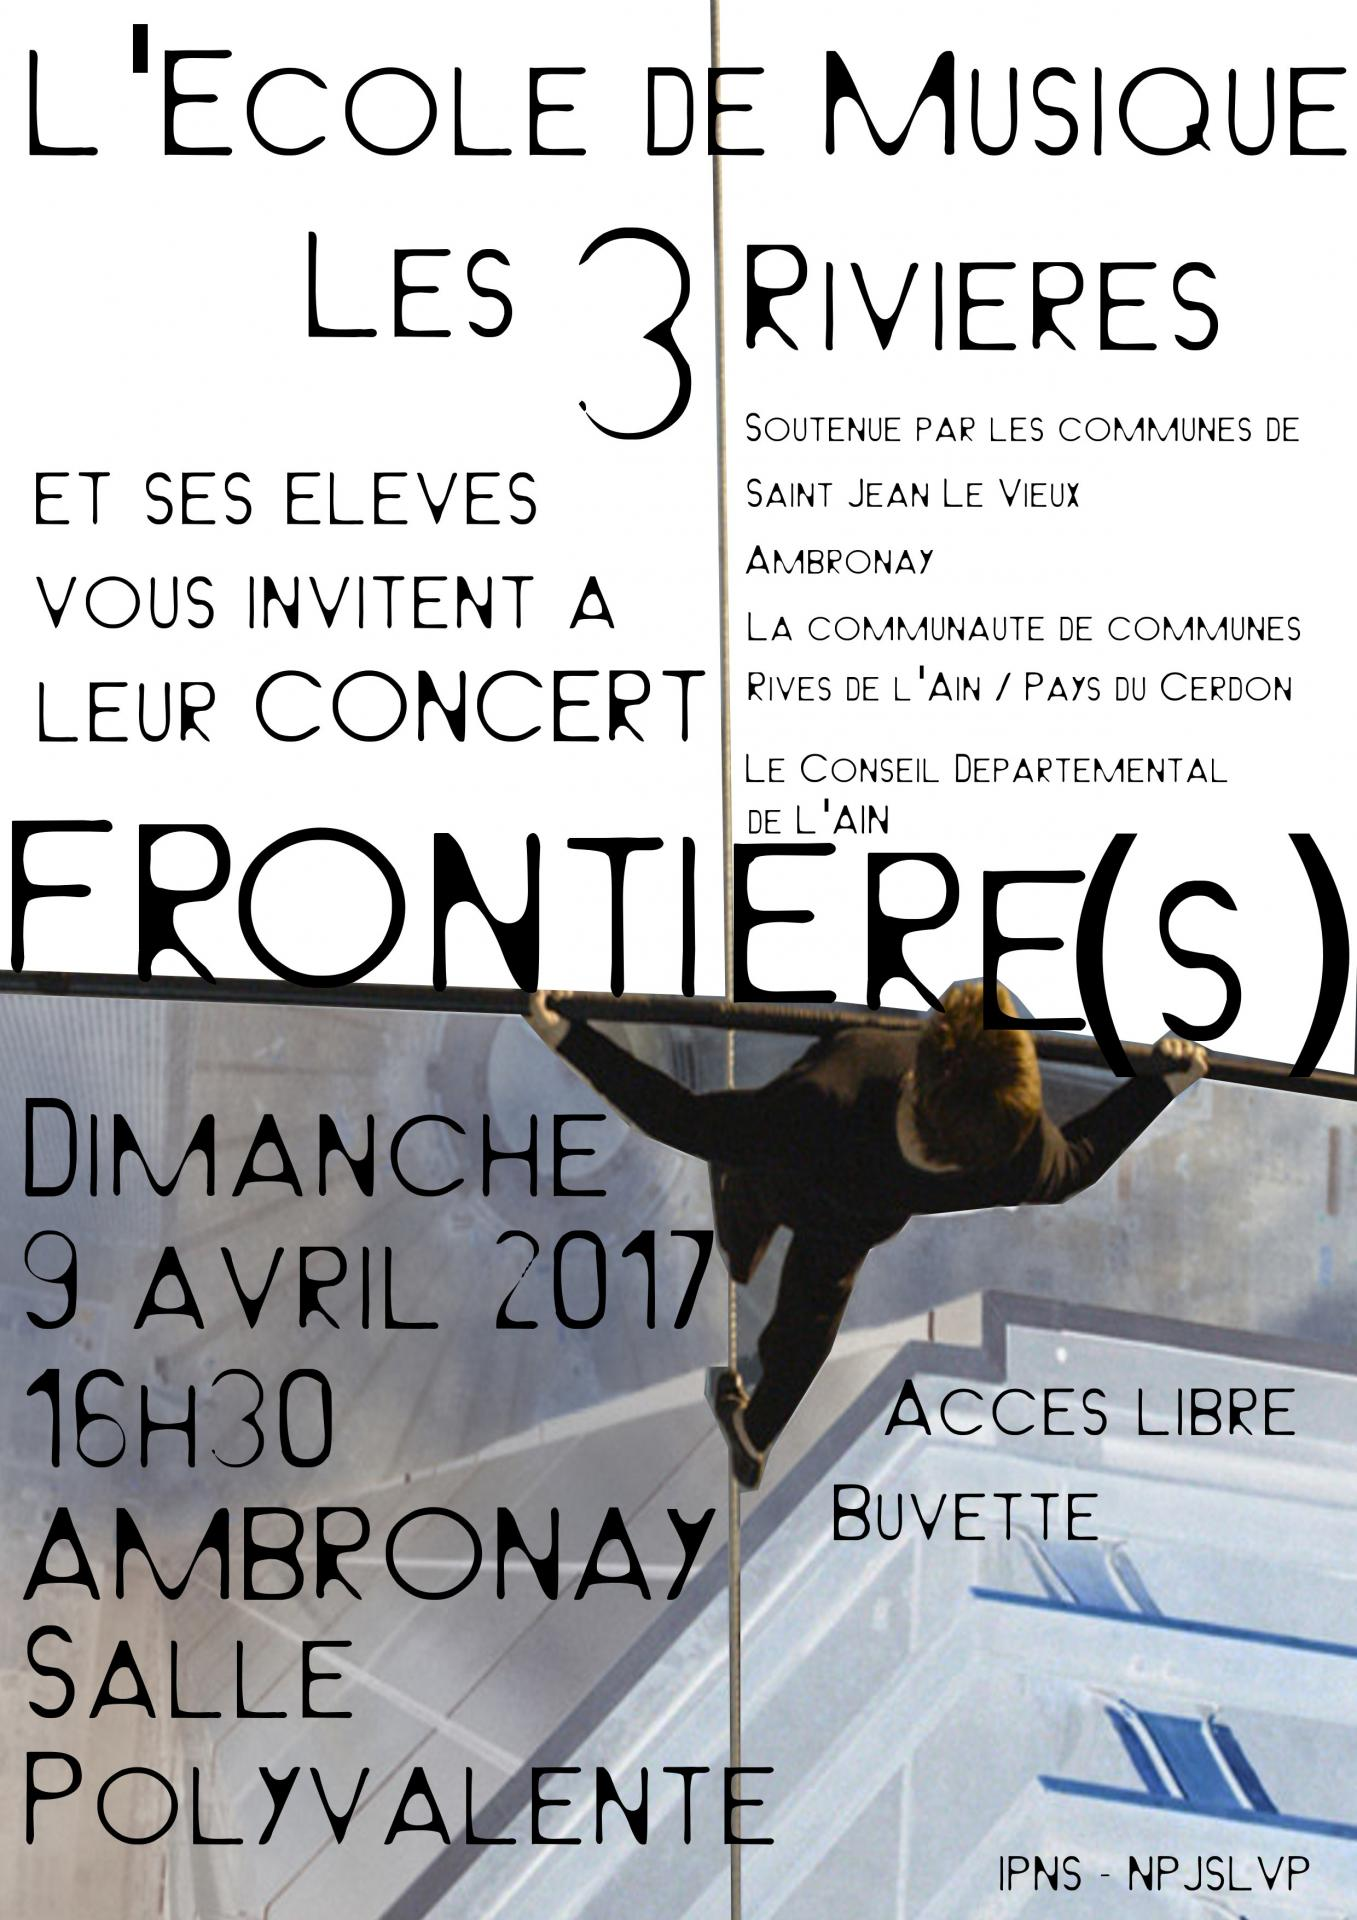 Correction affiche 9 avril